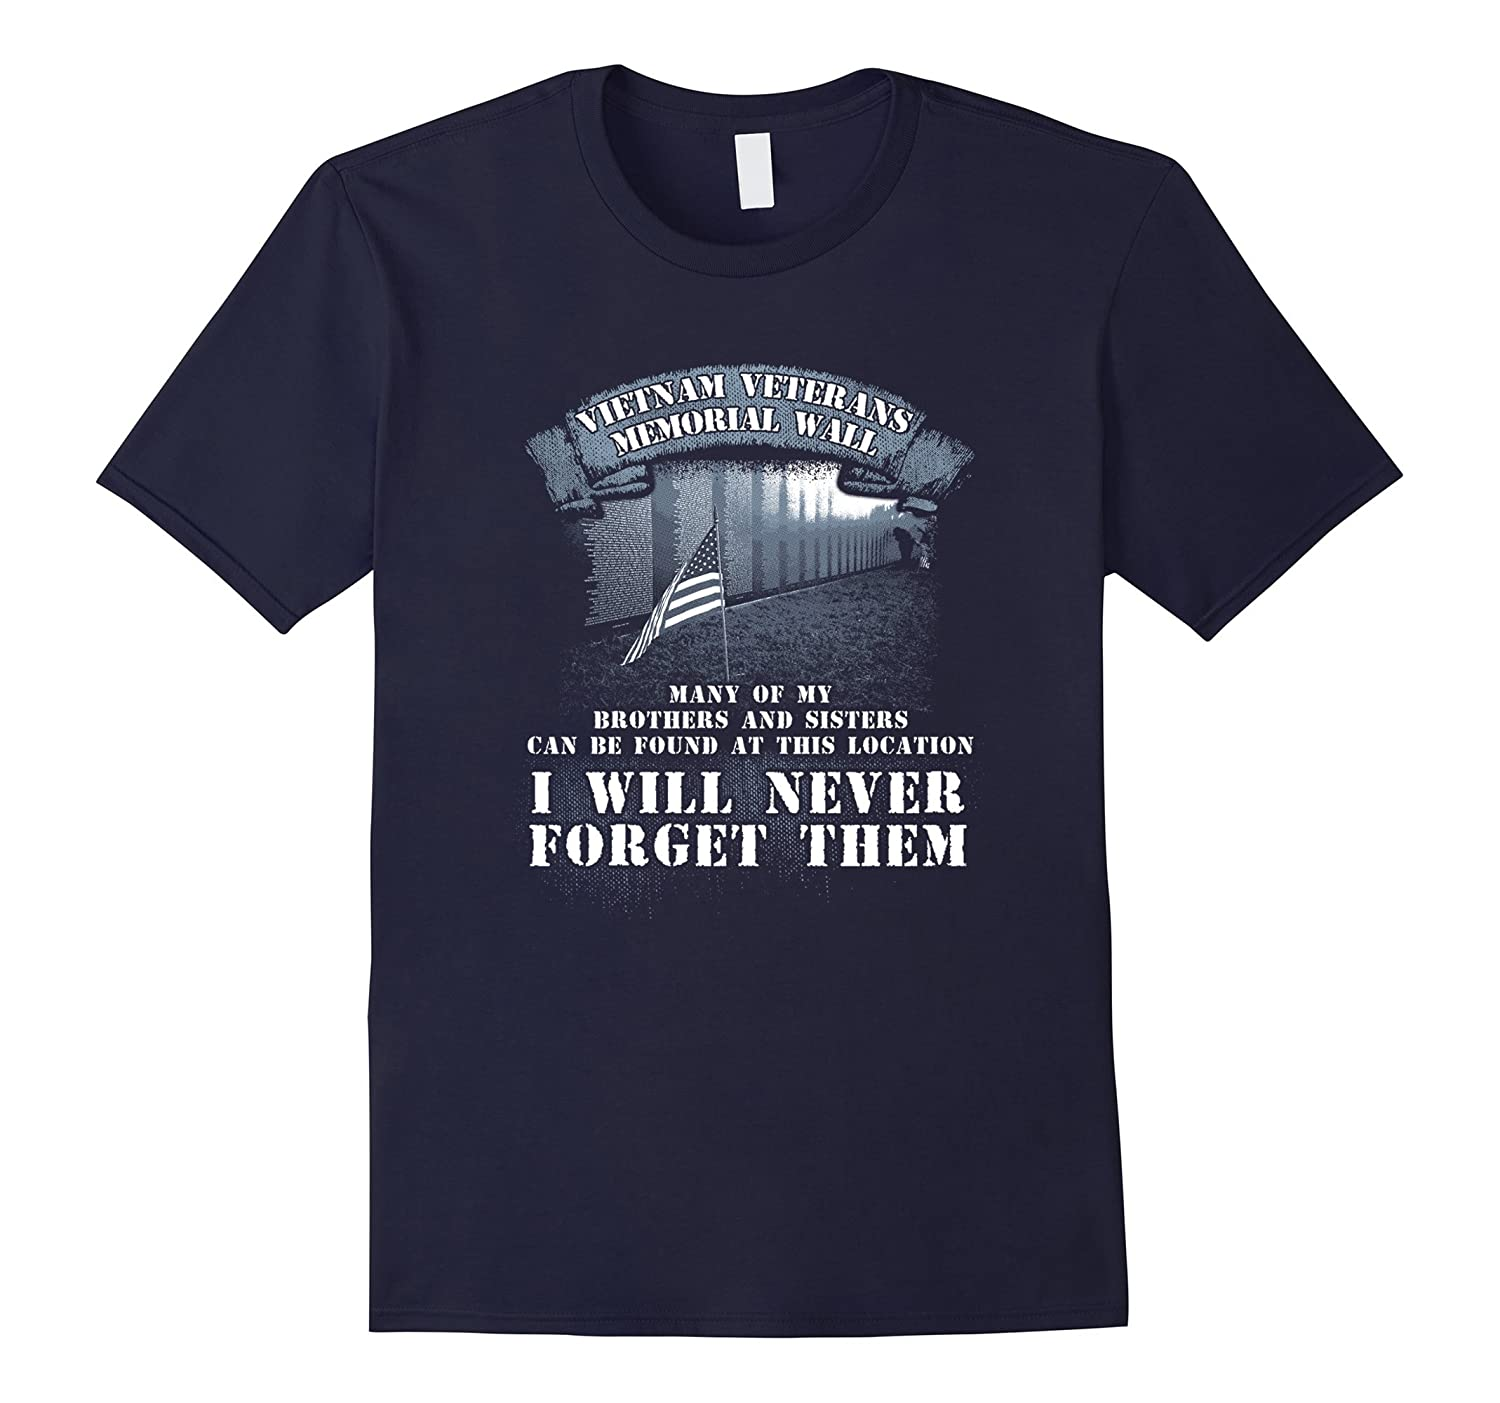 Tee Shirt Vietnam Veterans Memorial Wall T-Shirt Gift